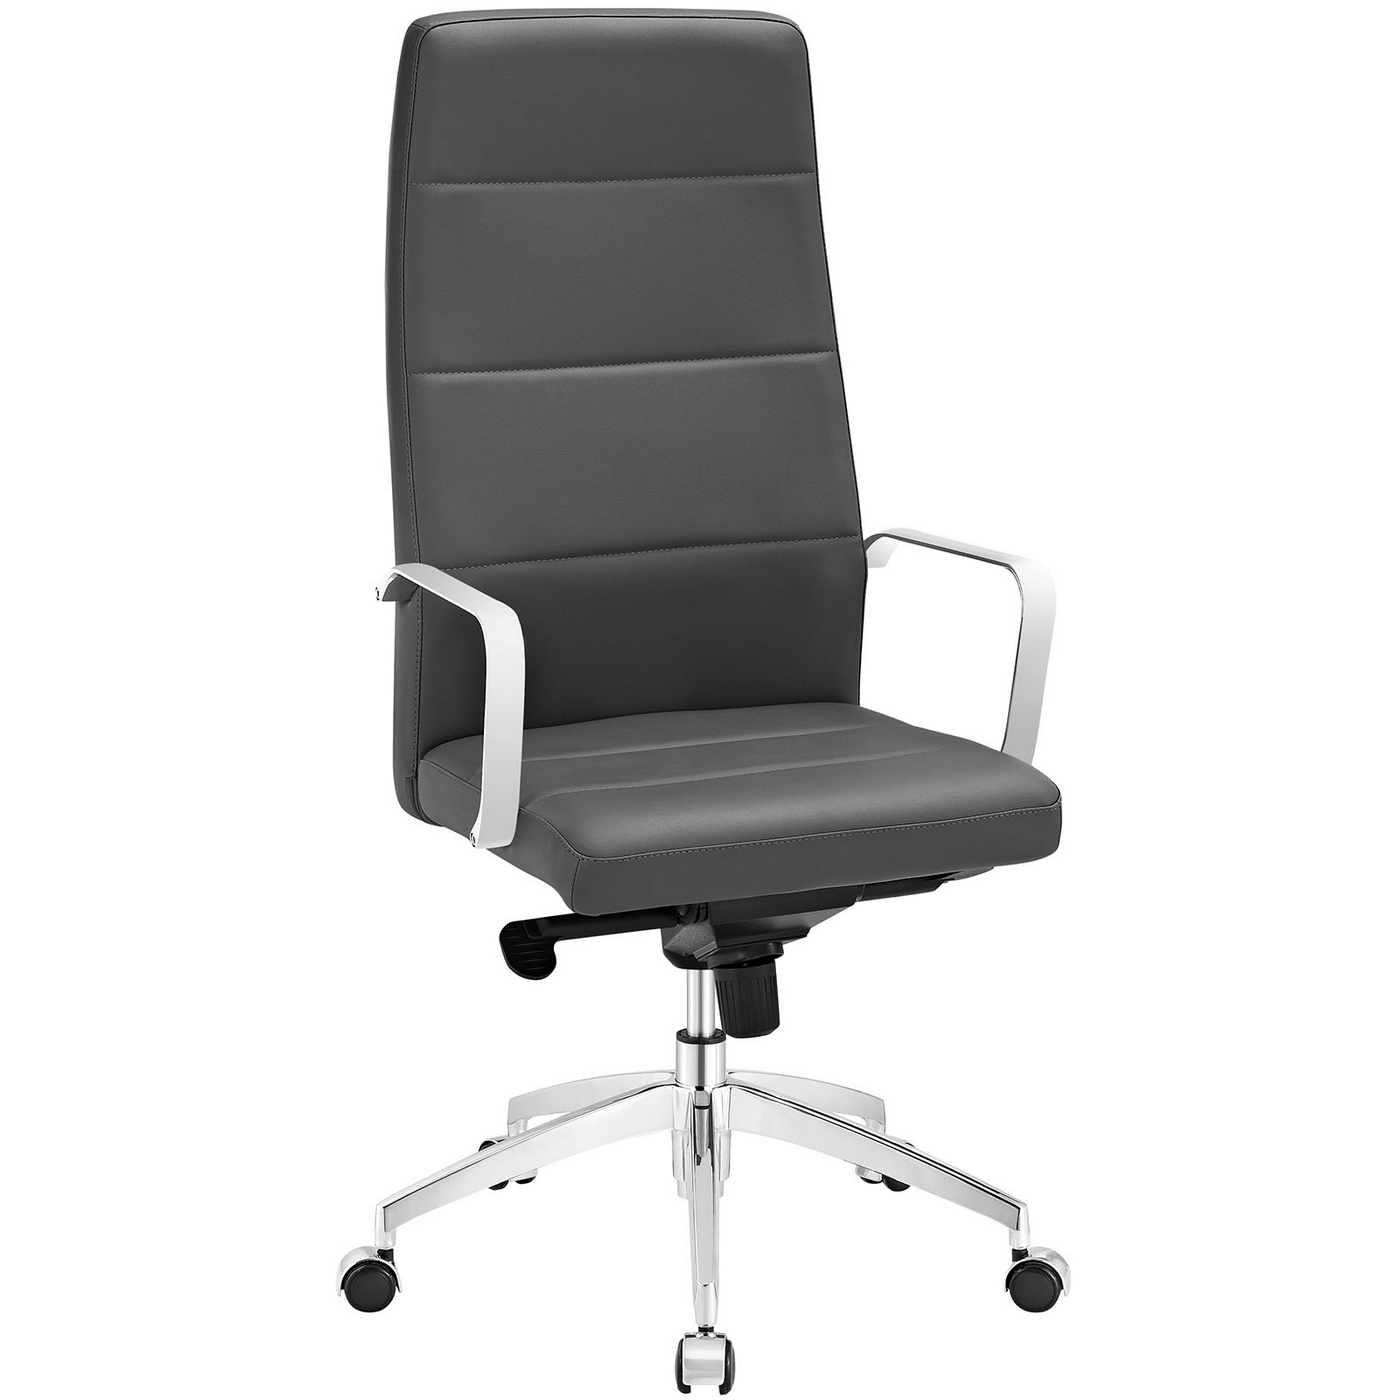 stride high back office chair upholstered in vinyl with chrome finish